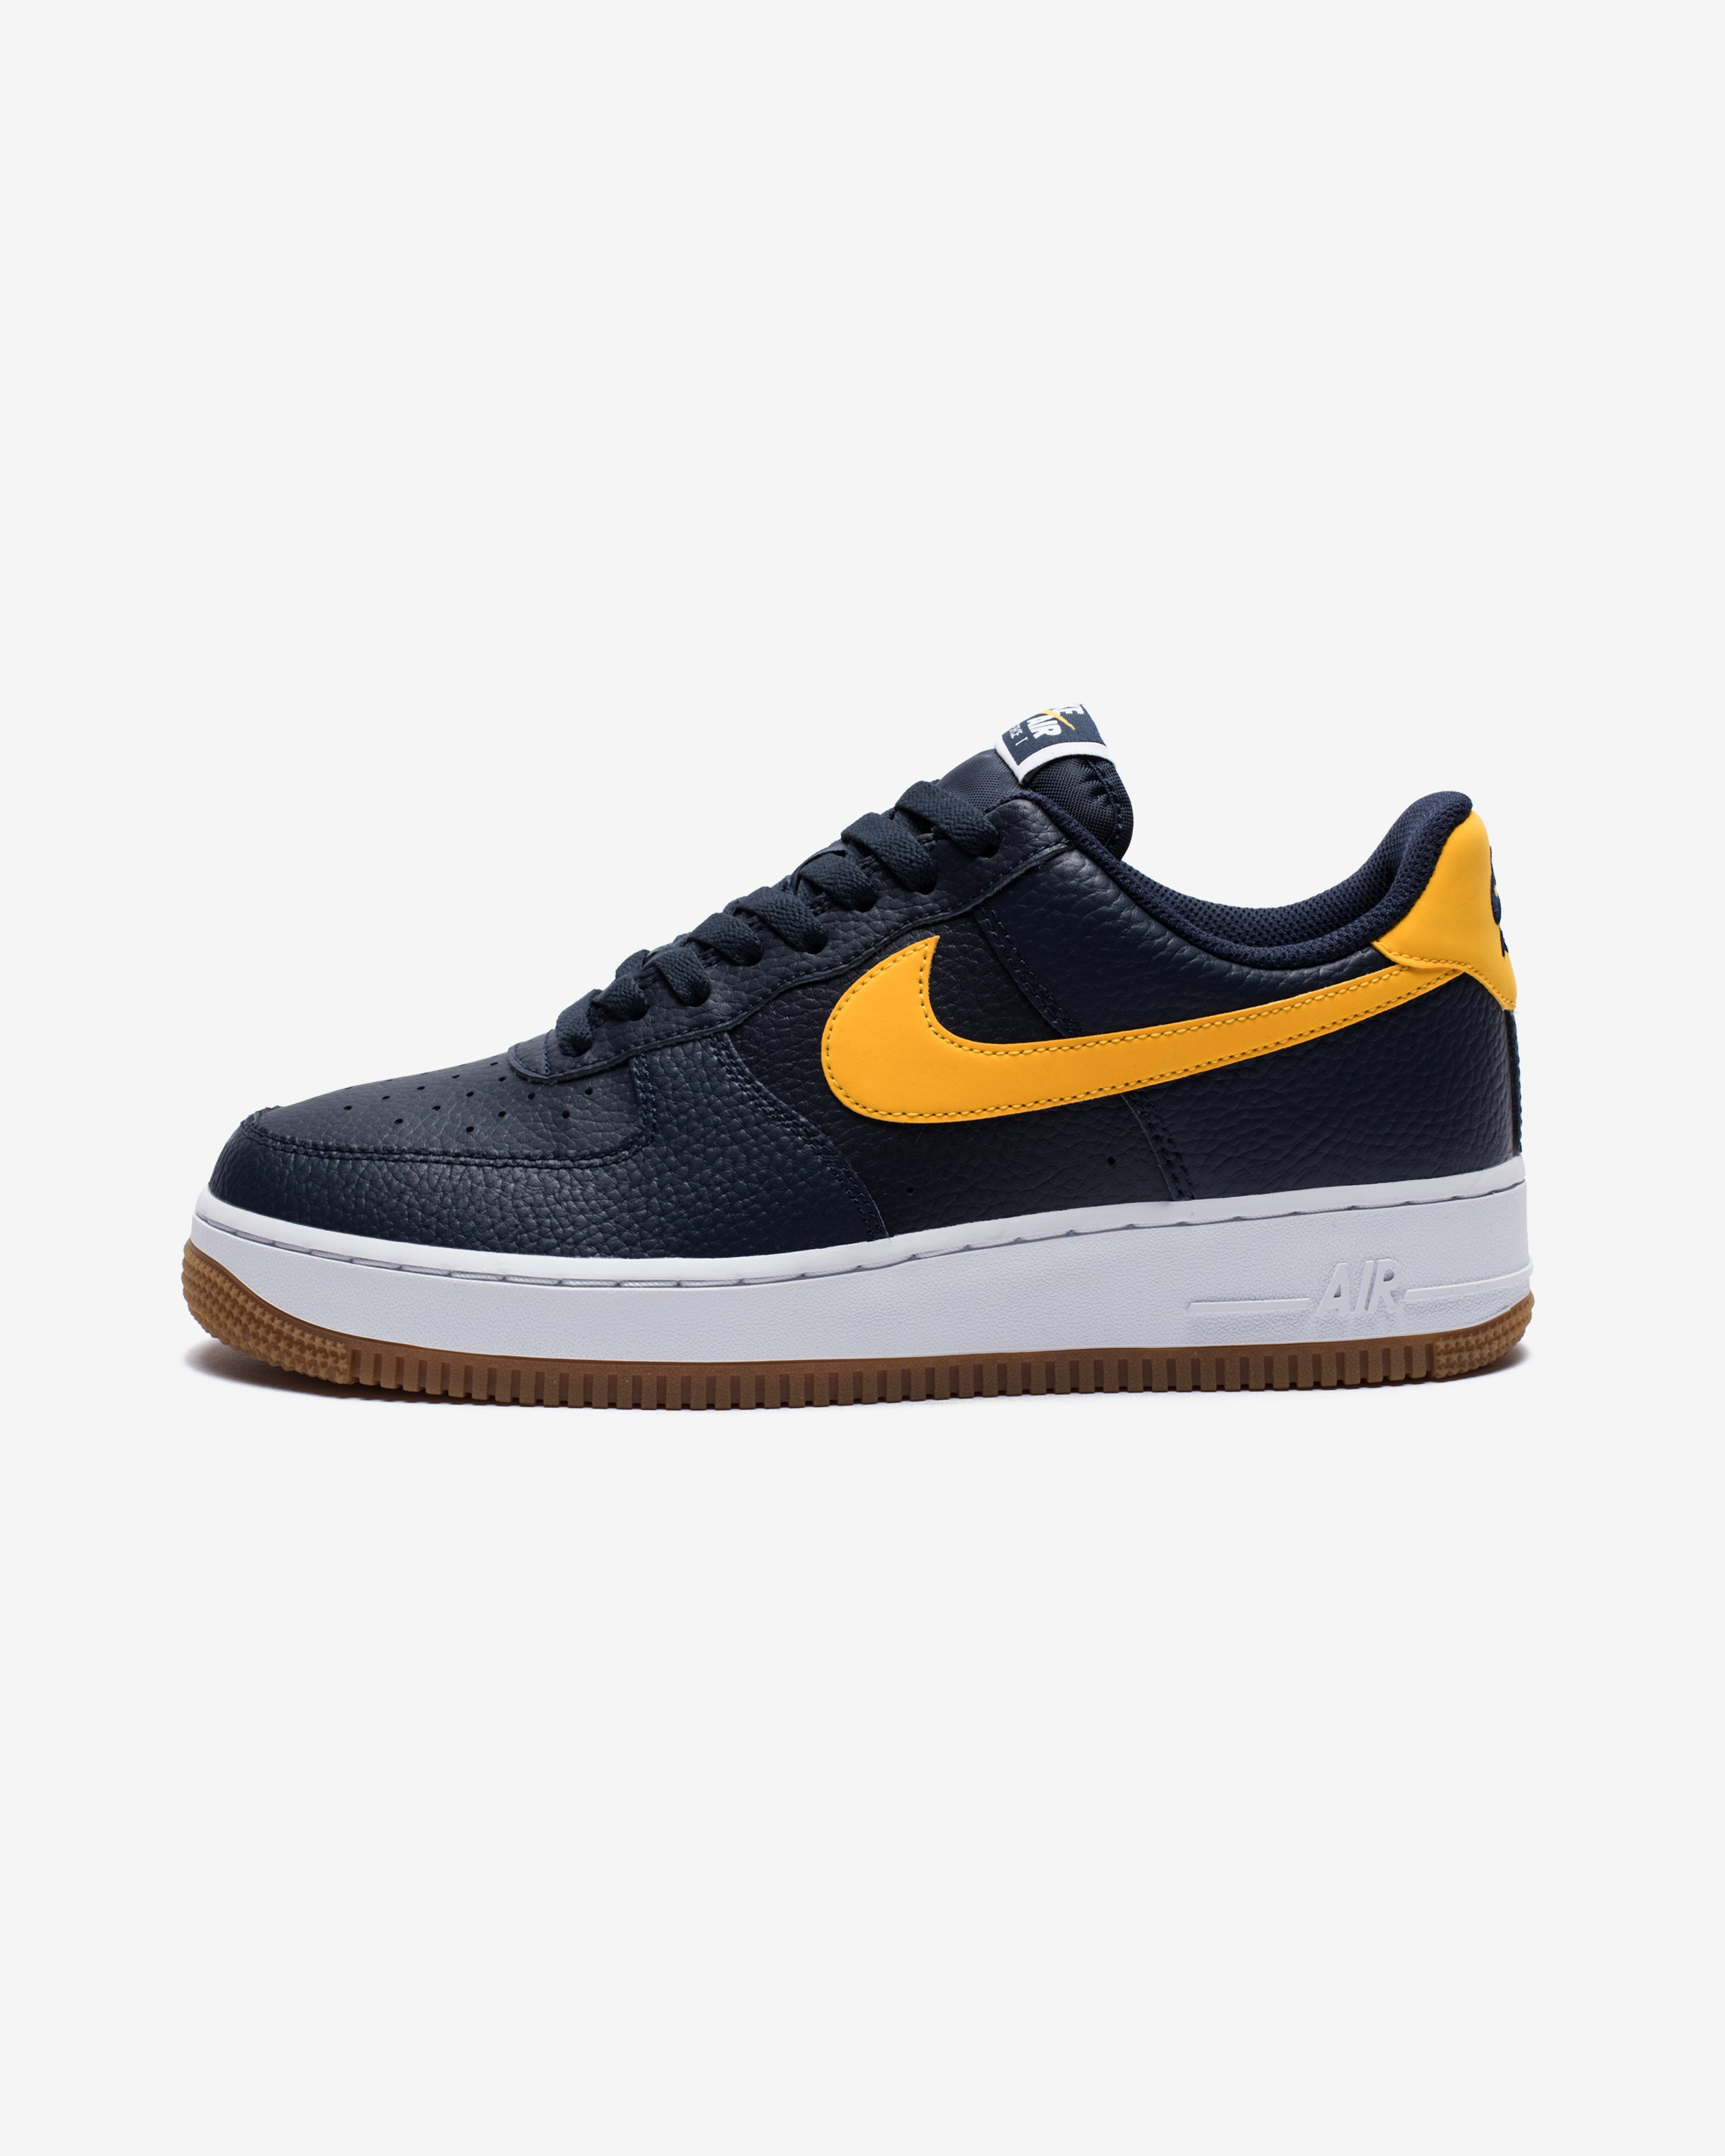 AIR FORCE 1 - OBSIDIAN/UNIVERSITYGOLD/WHITE